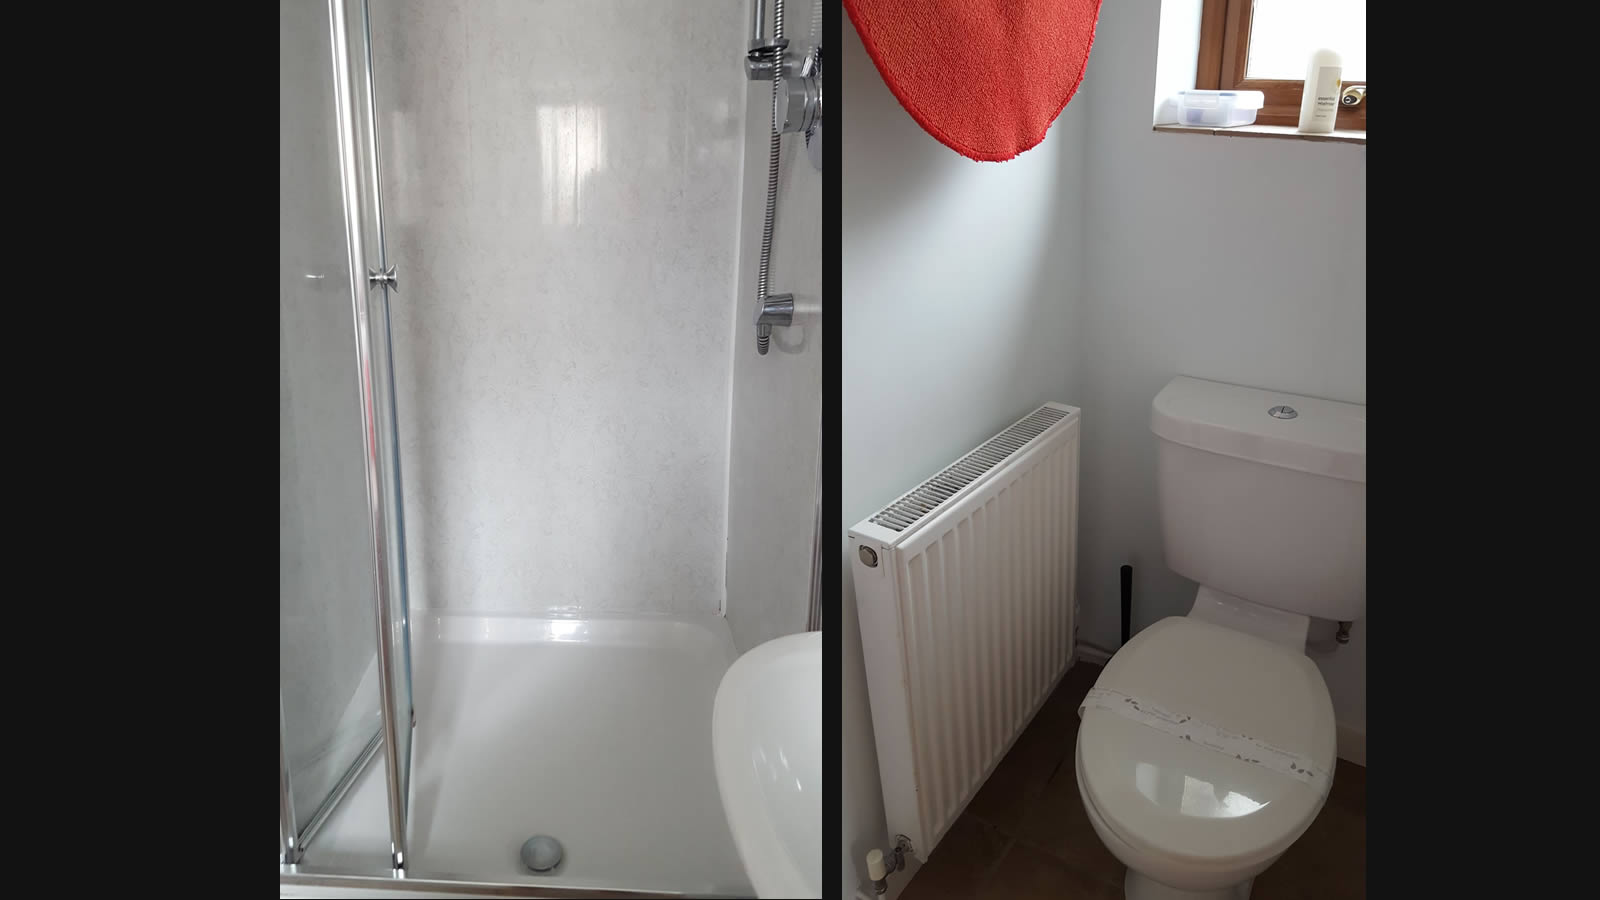 Spring cottage utility room shower and WC